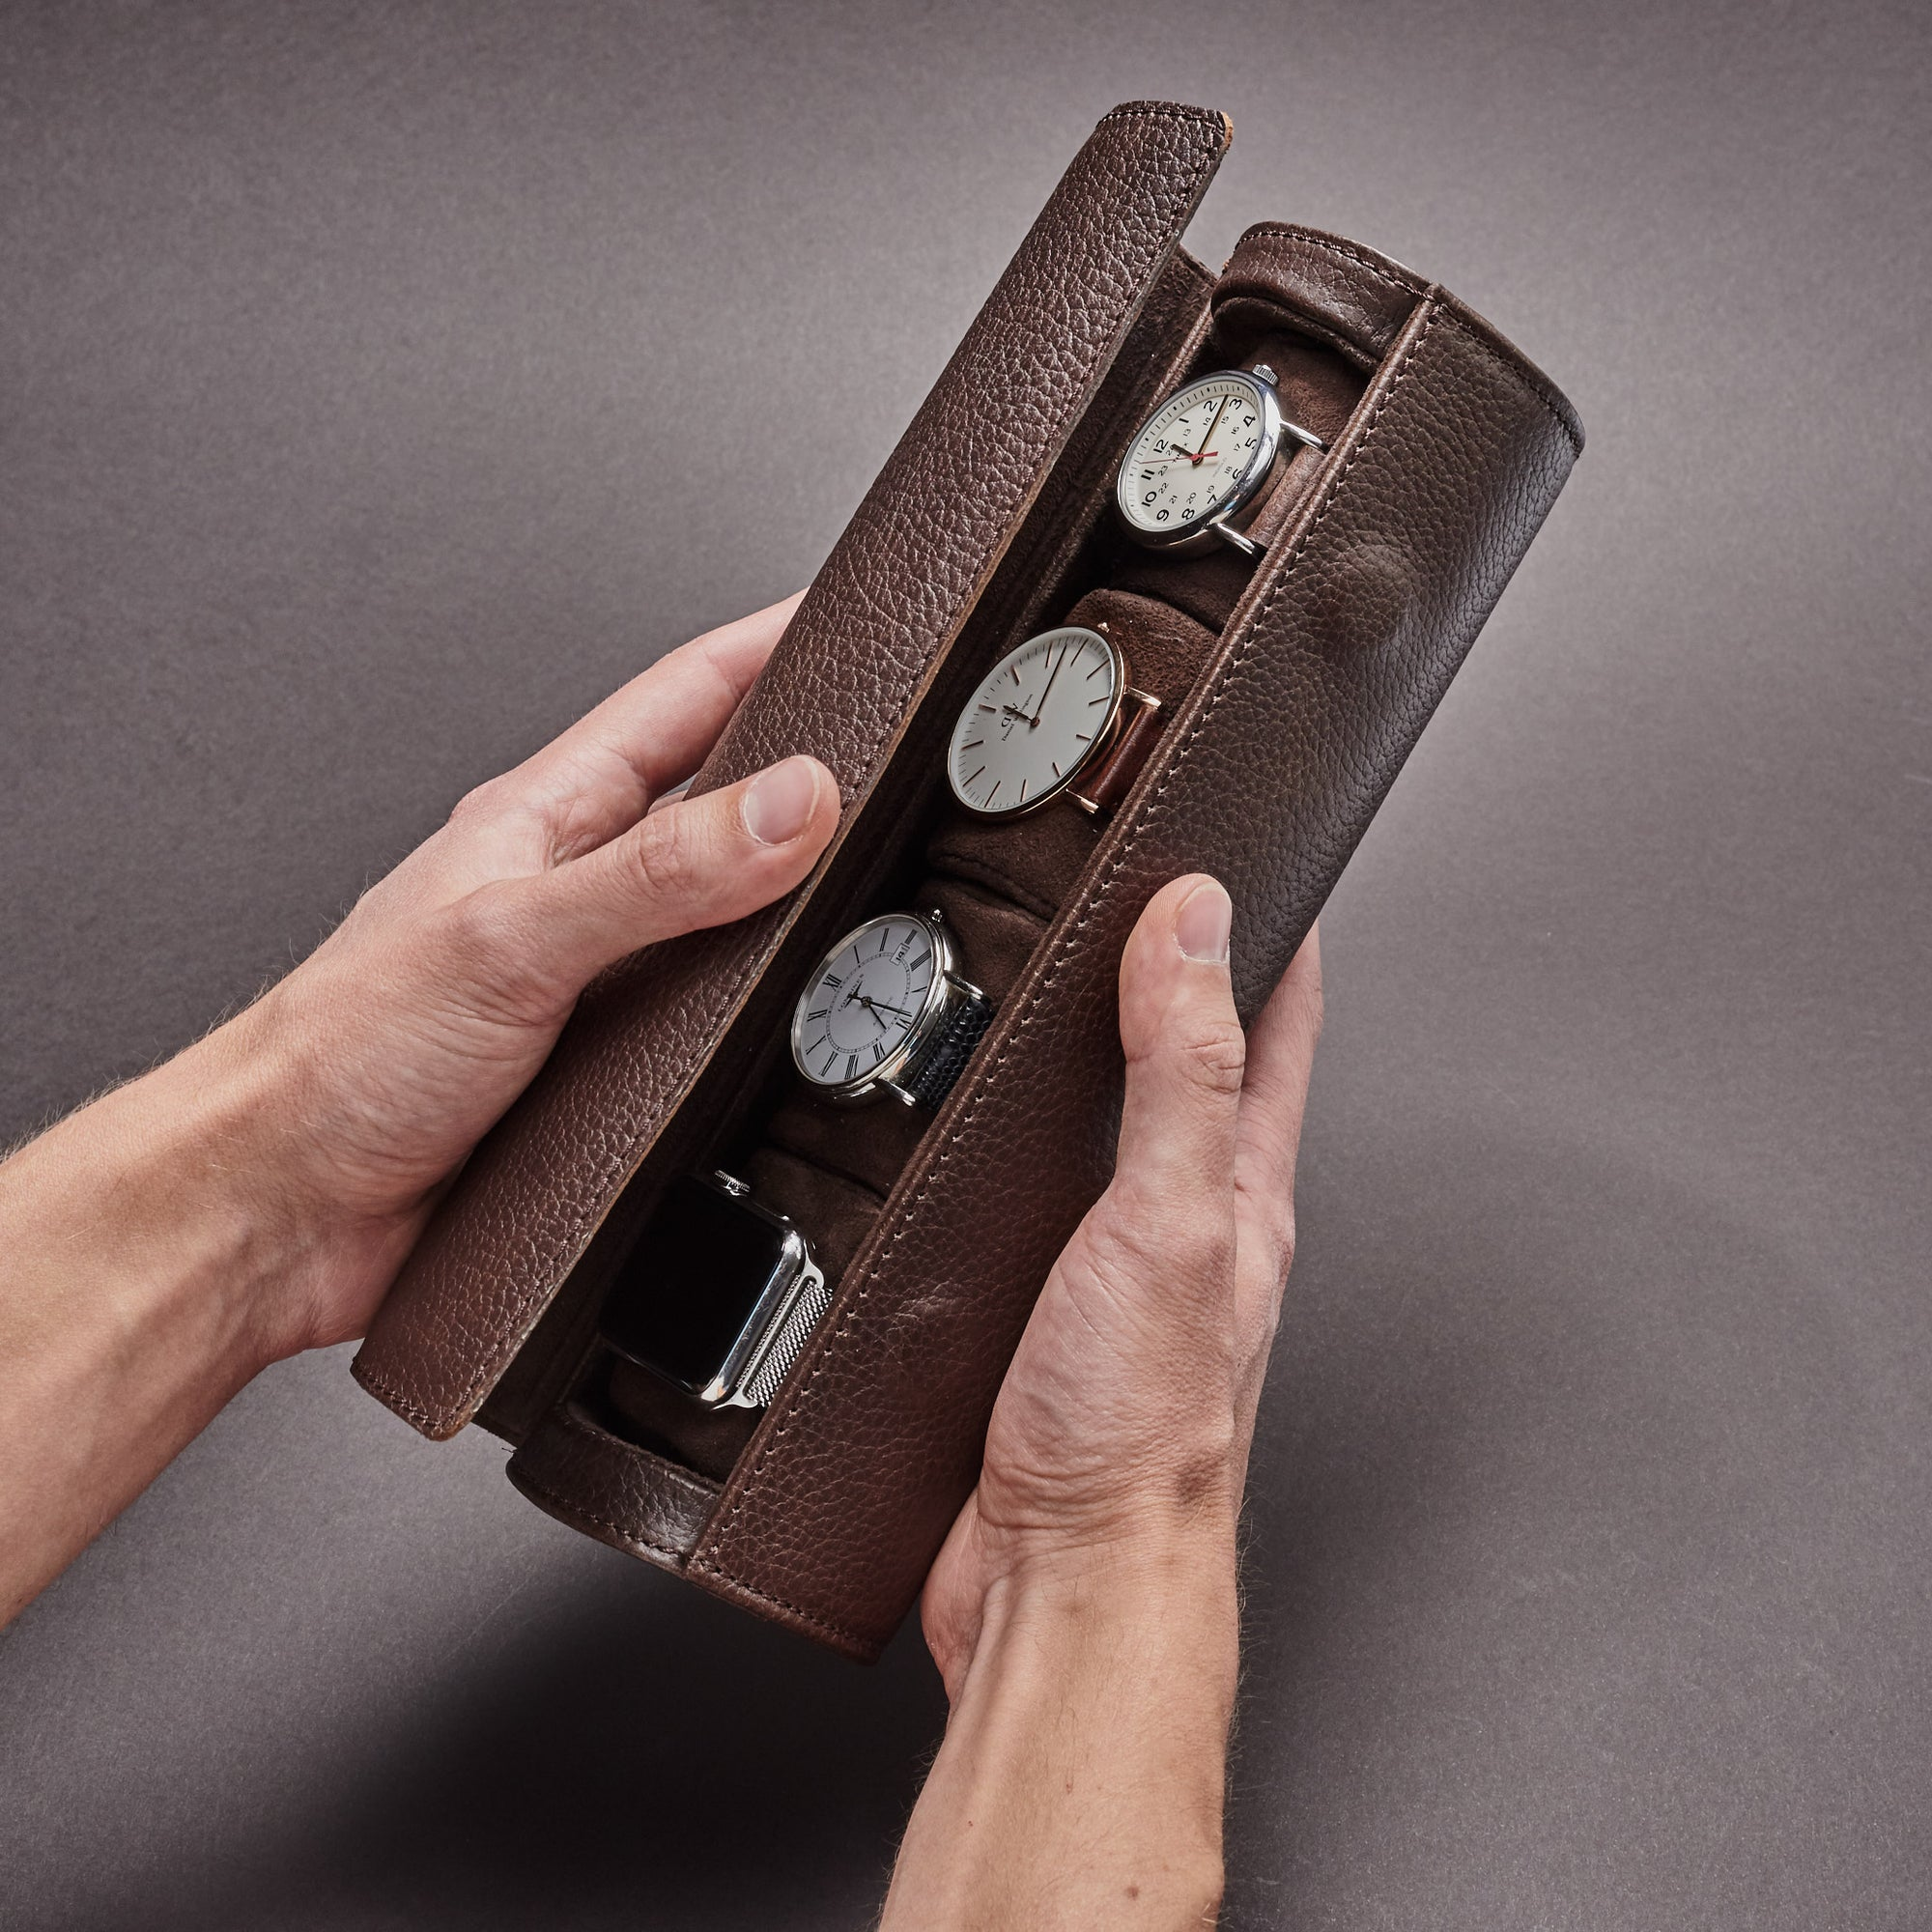 Watch Case by Capra Leather